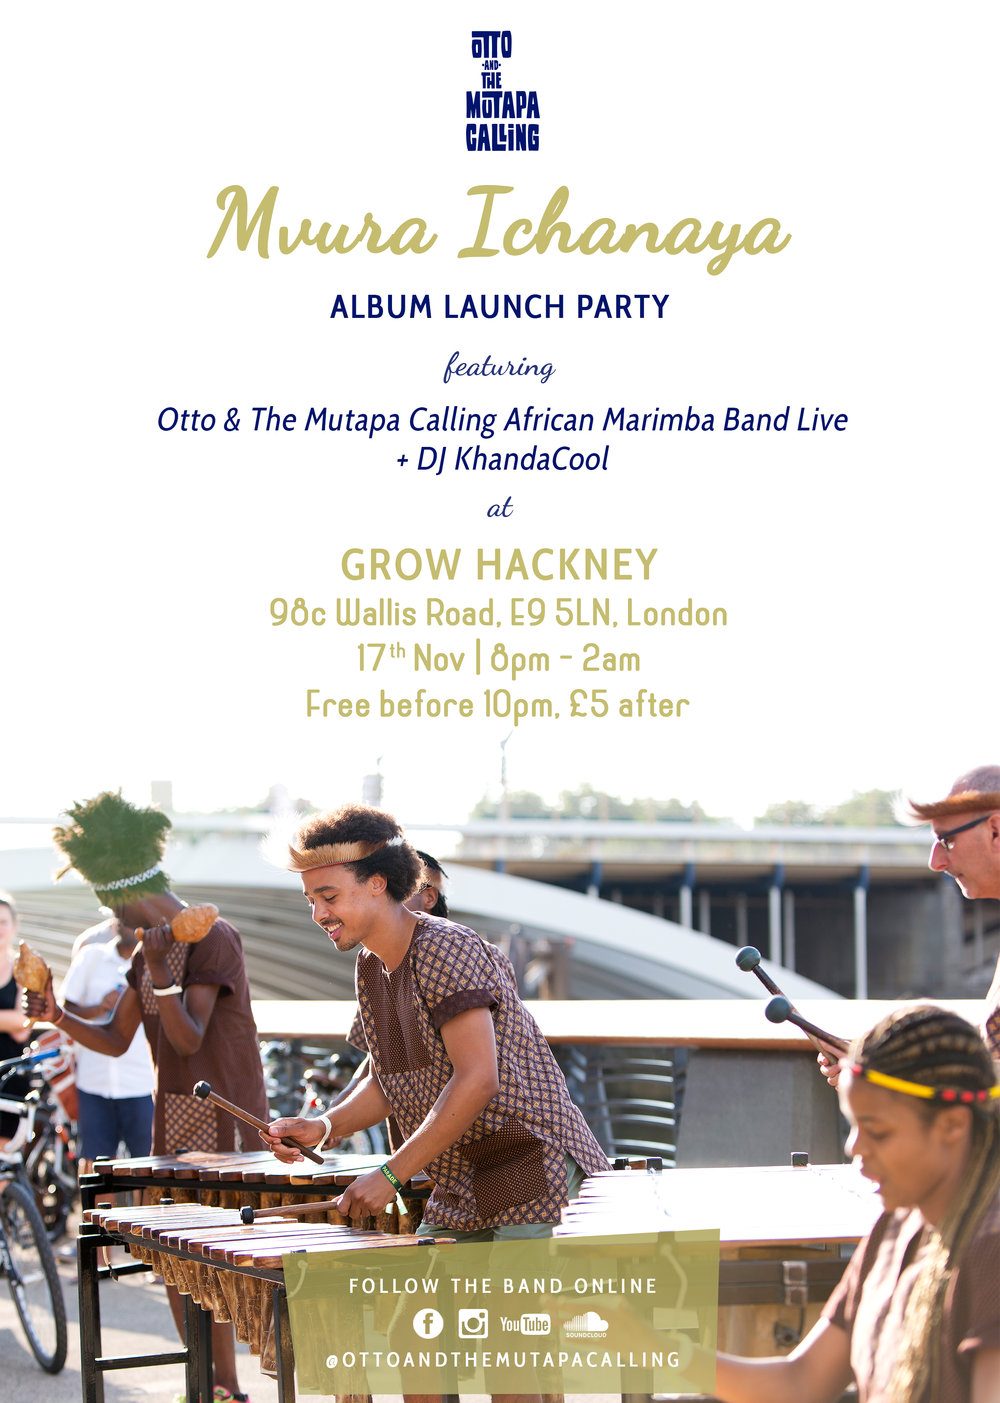 Otto And The Mutapa Calling Mvura Ichanaya Album Launch -Poster.jpg